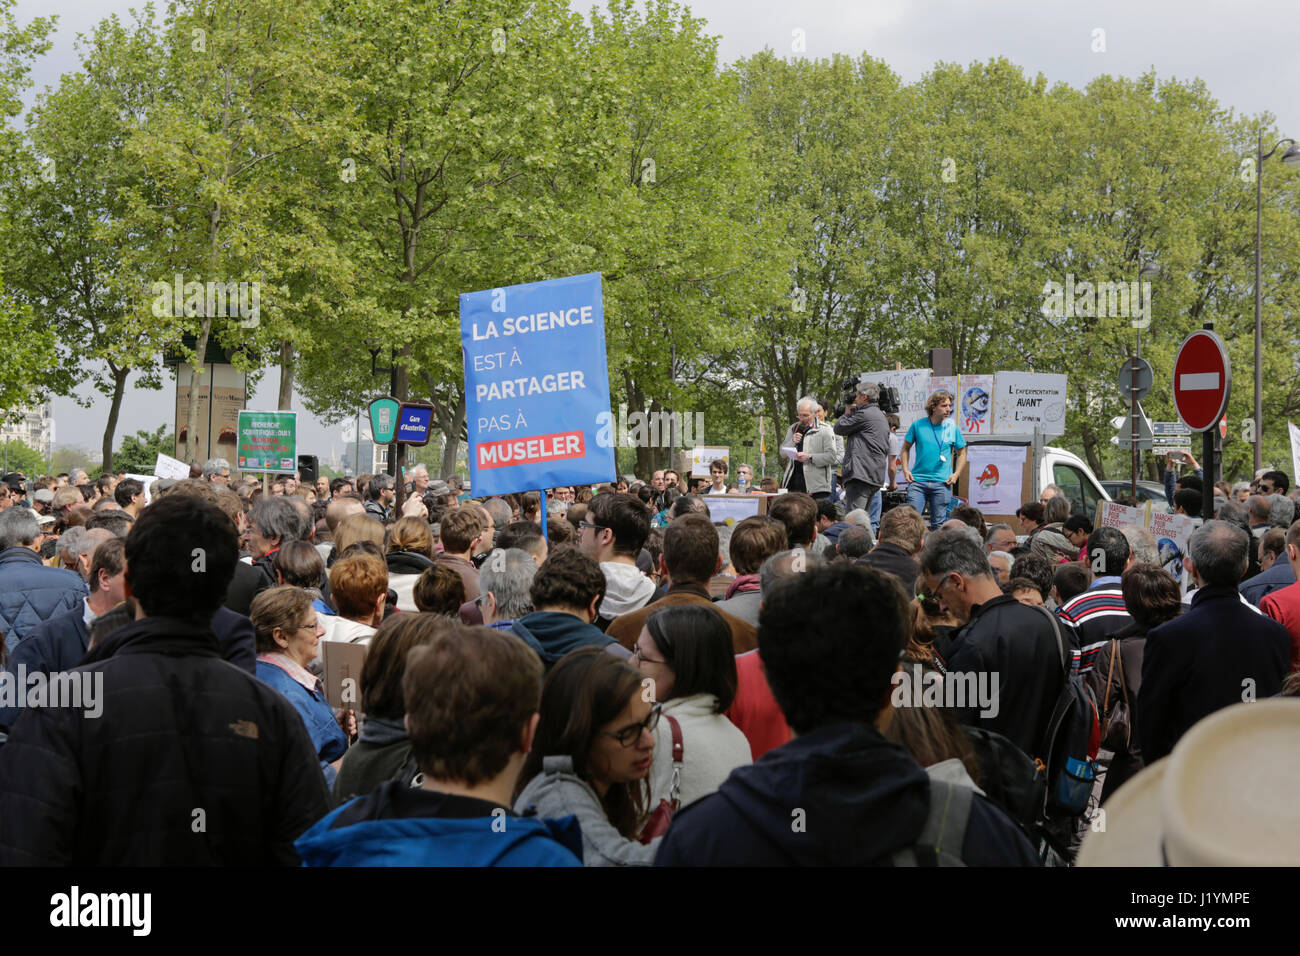 Paris, France. 22nd Apr, 2017. Several hundred activists have assembled for the March for Science. A few hundred Stock Photo